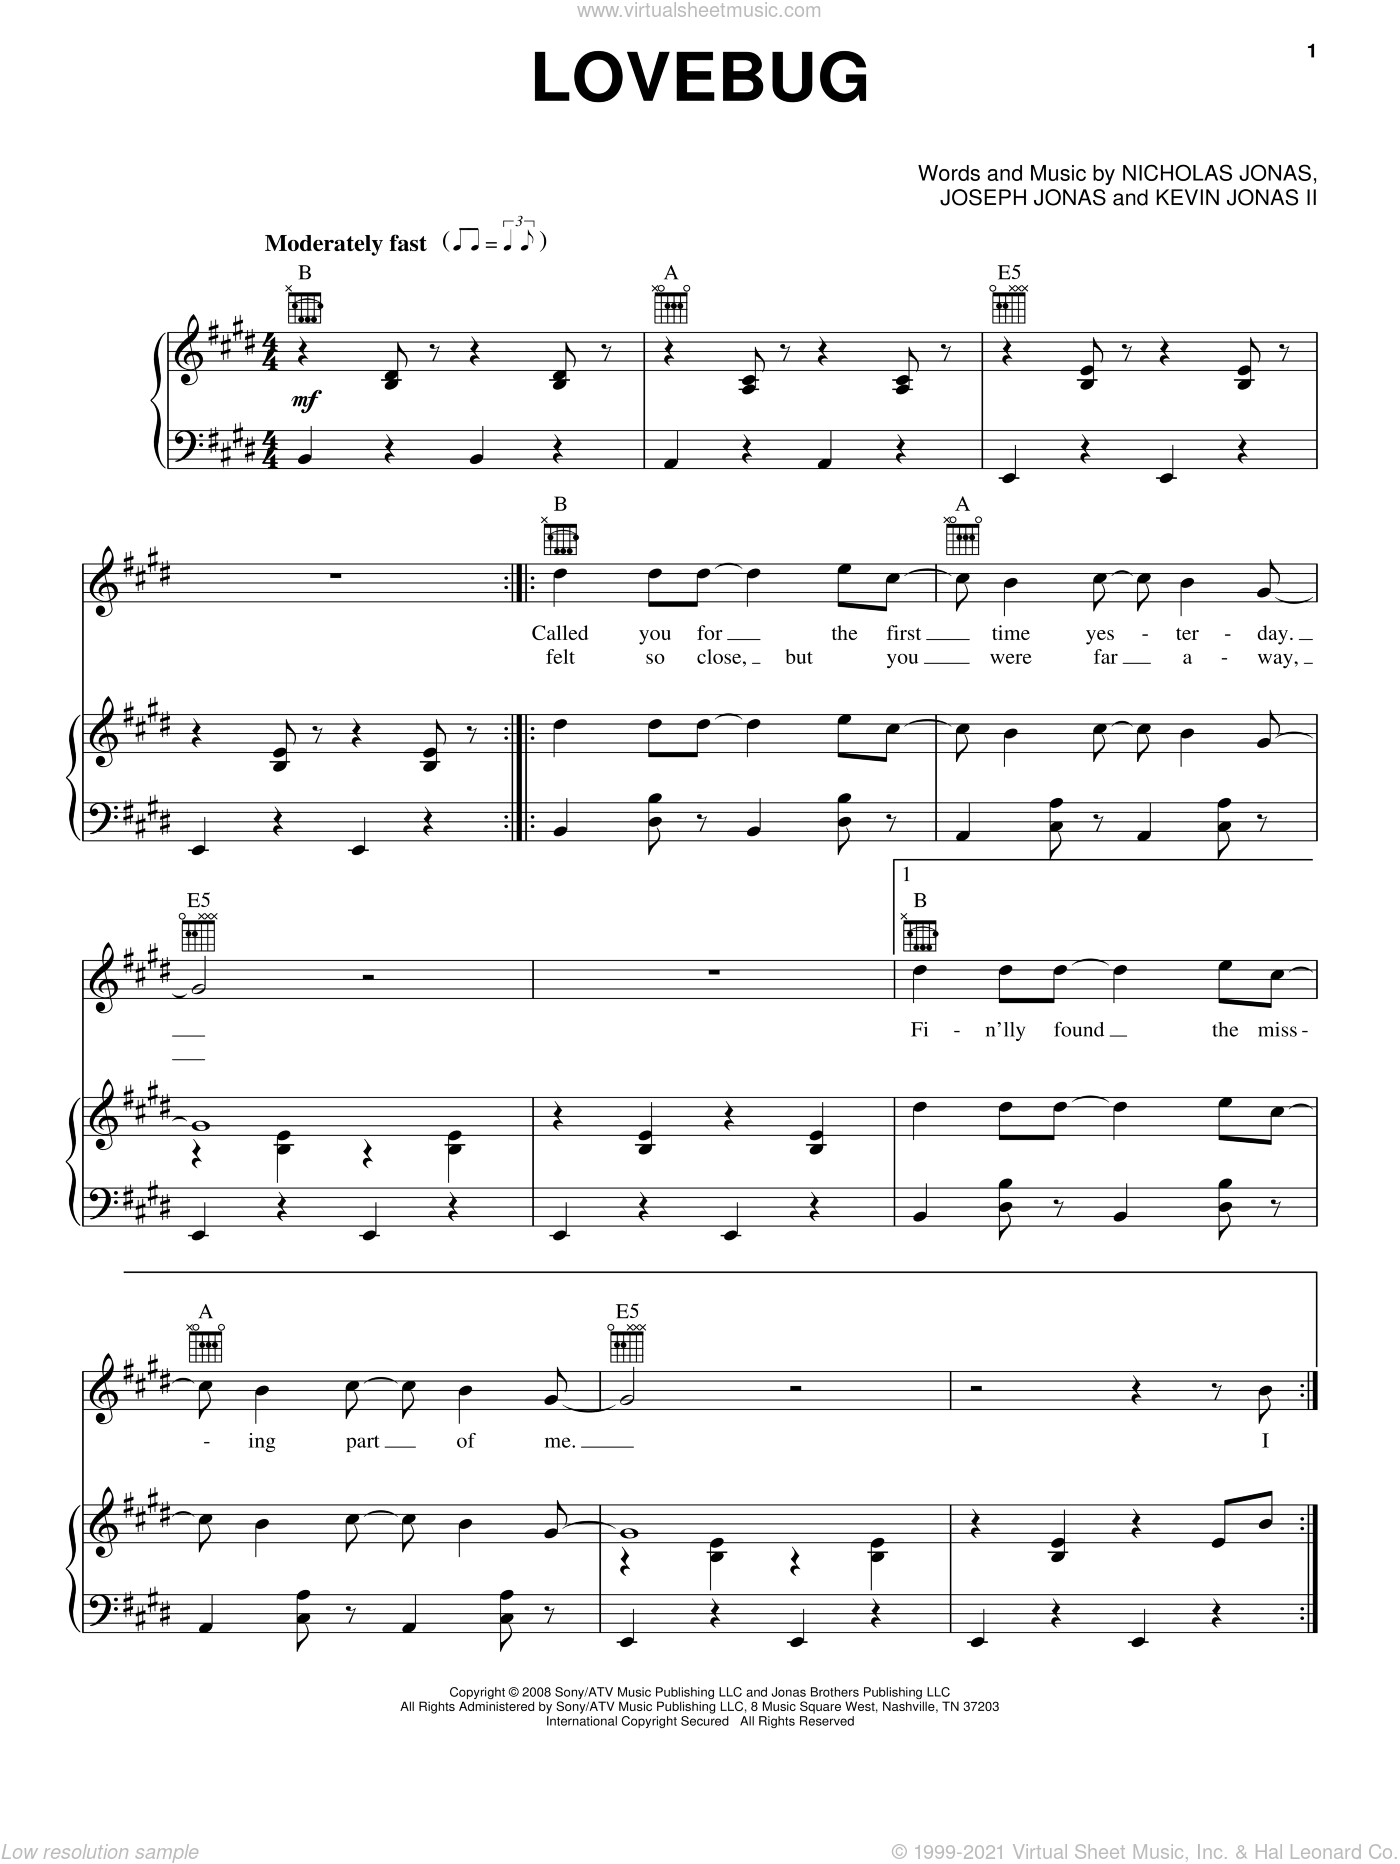 Lovebug sheet music for voice, piano or guitar by Jonas Brothers, Joseph Jonas, Kevin Jonas II and Nicholas Jonas, intermediate skill level